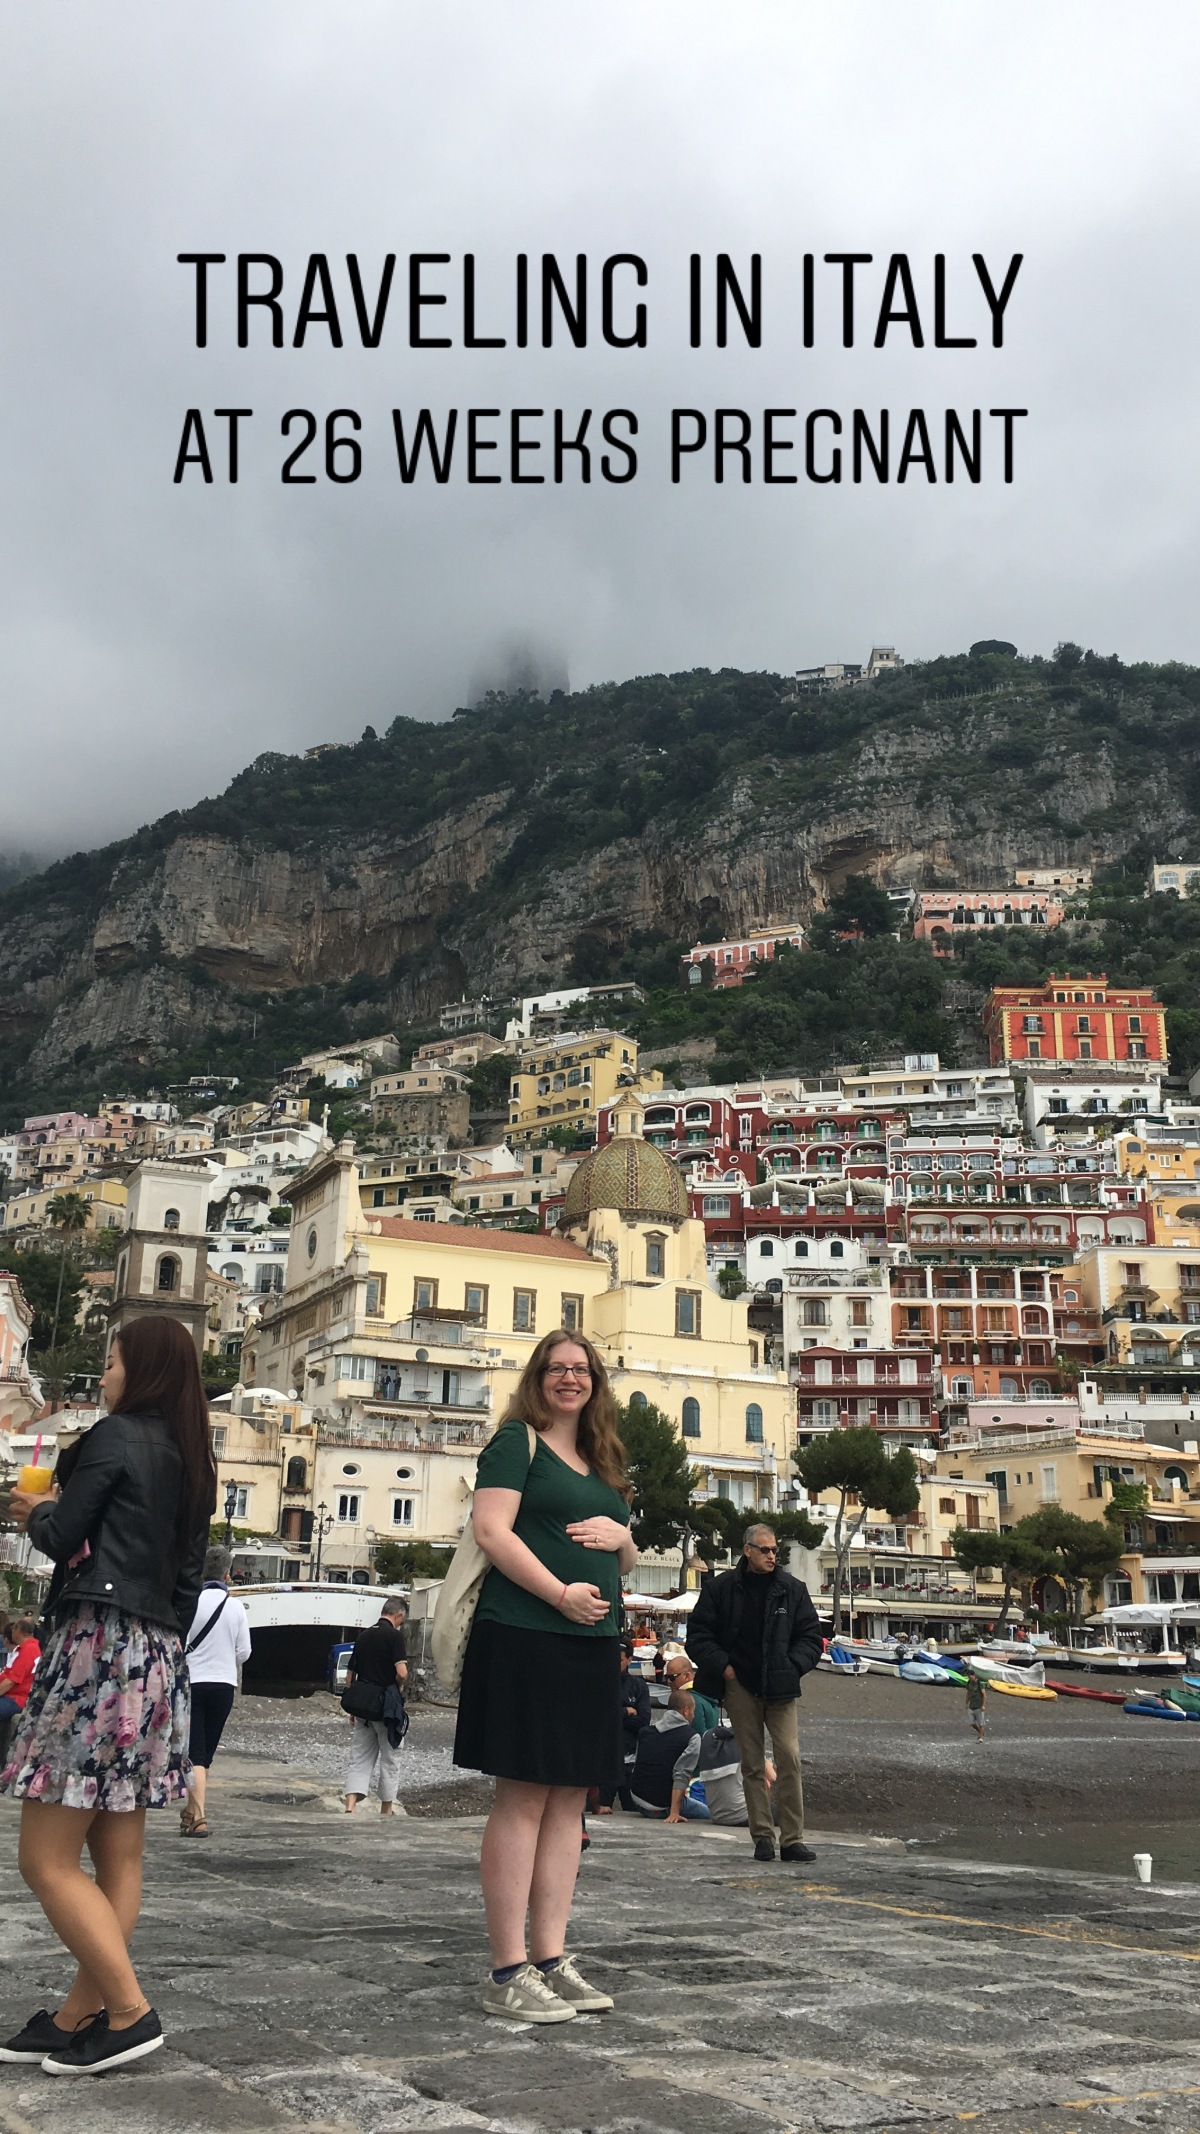 Our Italy Babymoon at 26 Weeks Pregnant: My experience traveling in Italy and encouragement to expecting moms out there